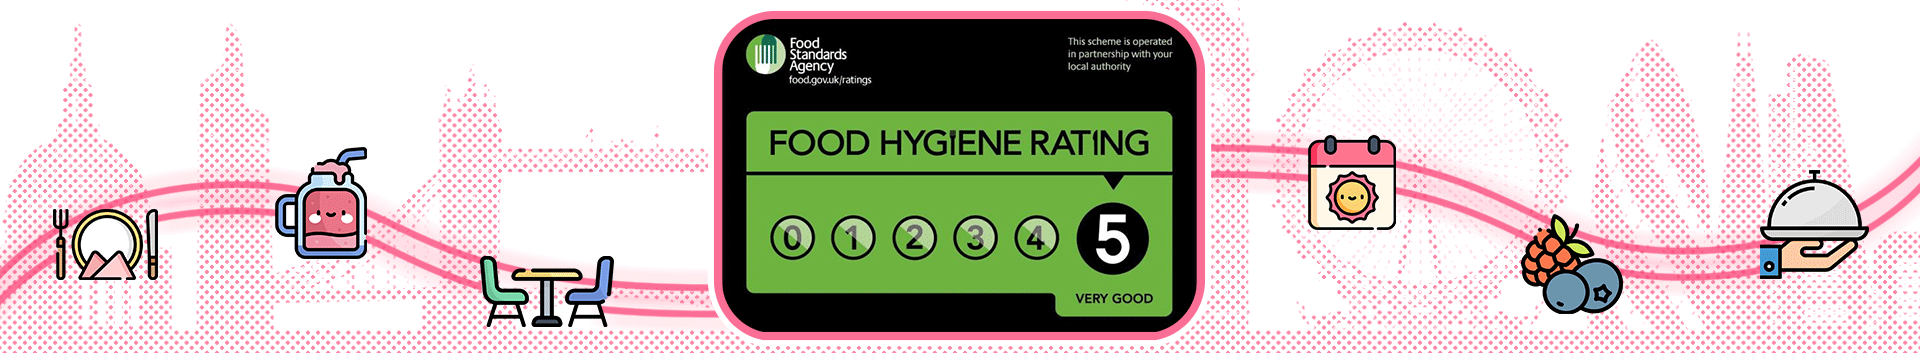 Food-Hygiene-Rating-5-PSD.png